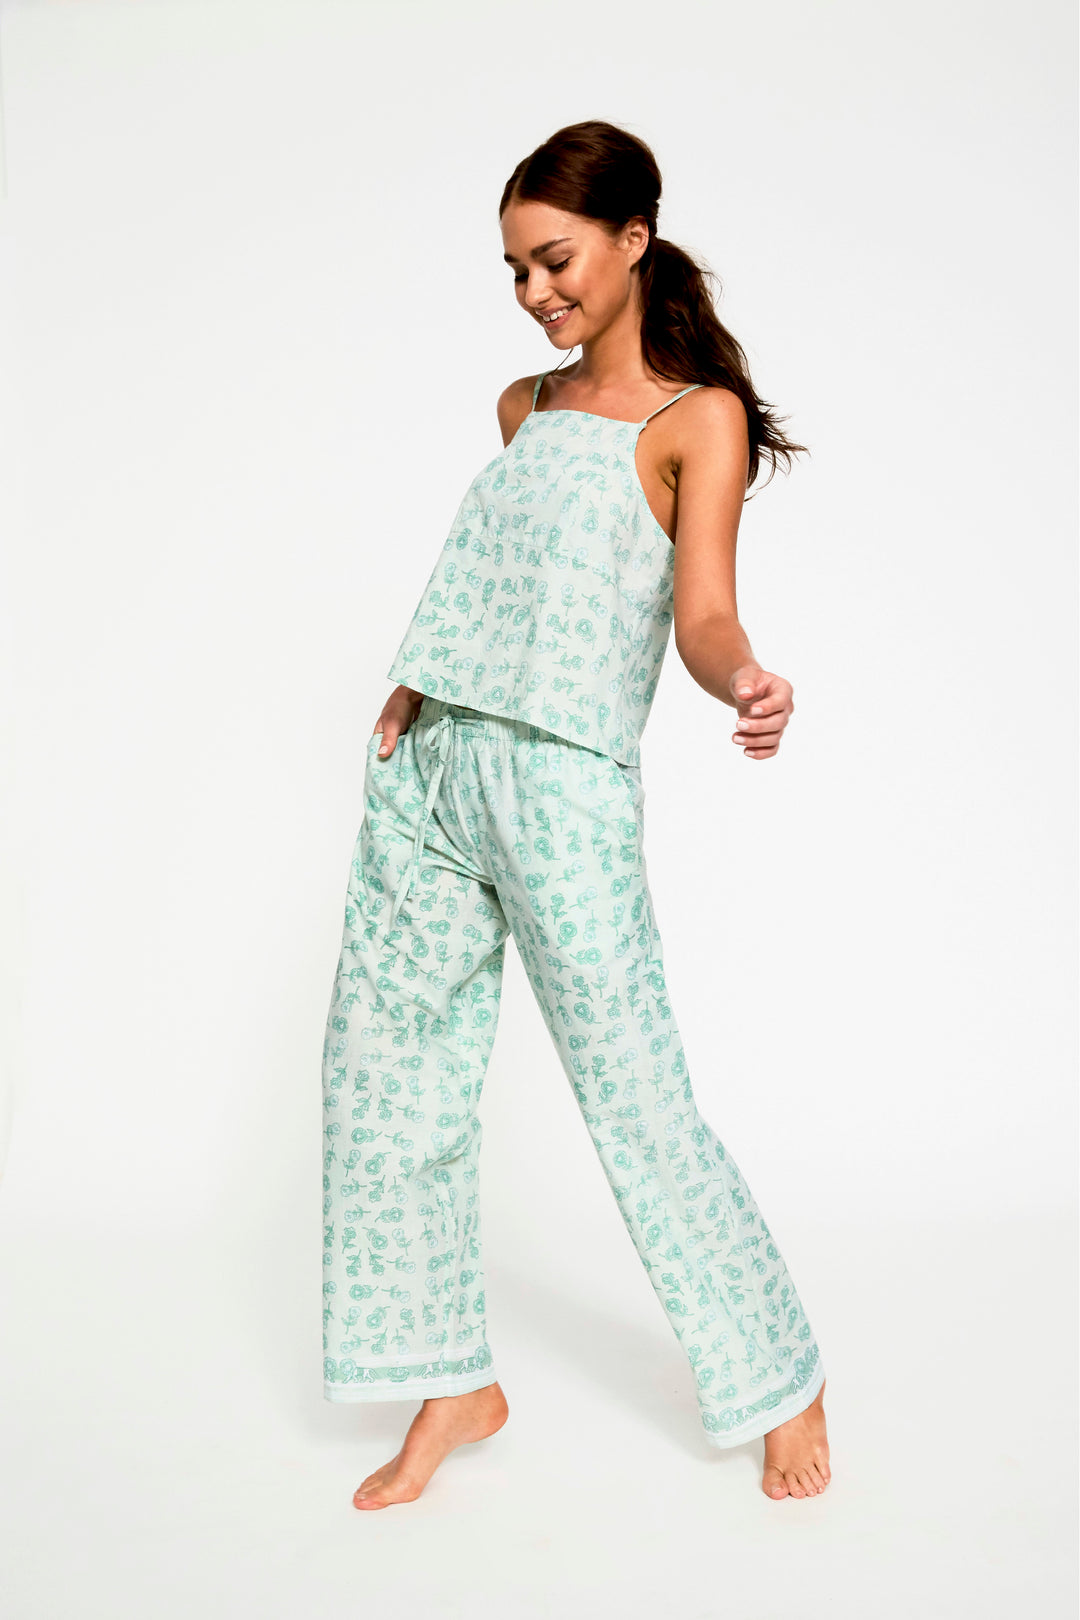 dandylion pj set in eau